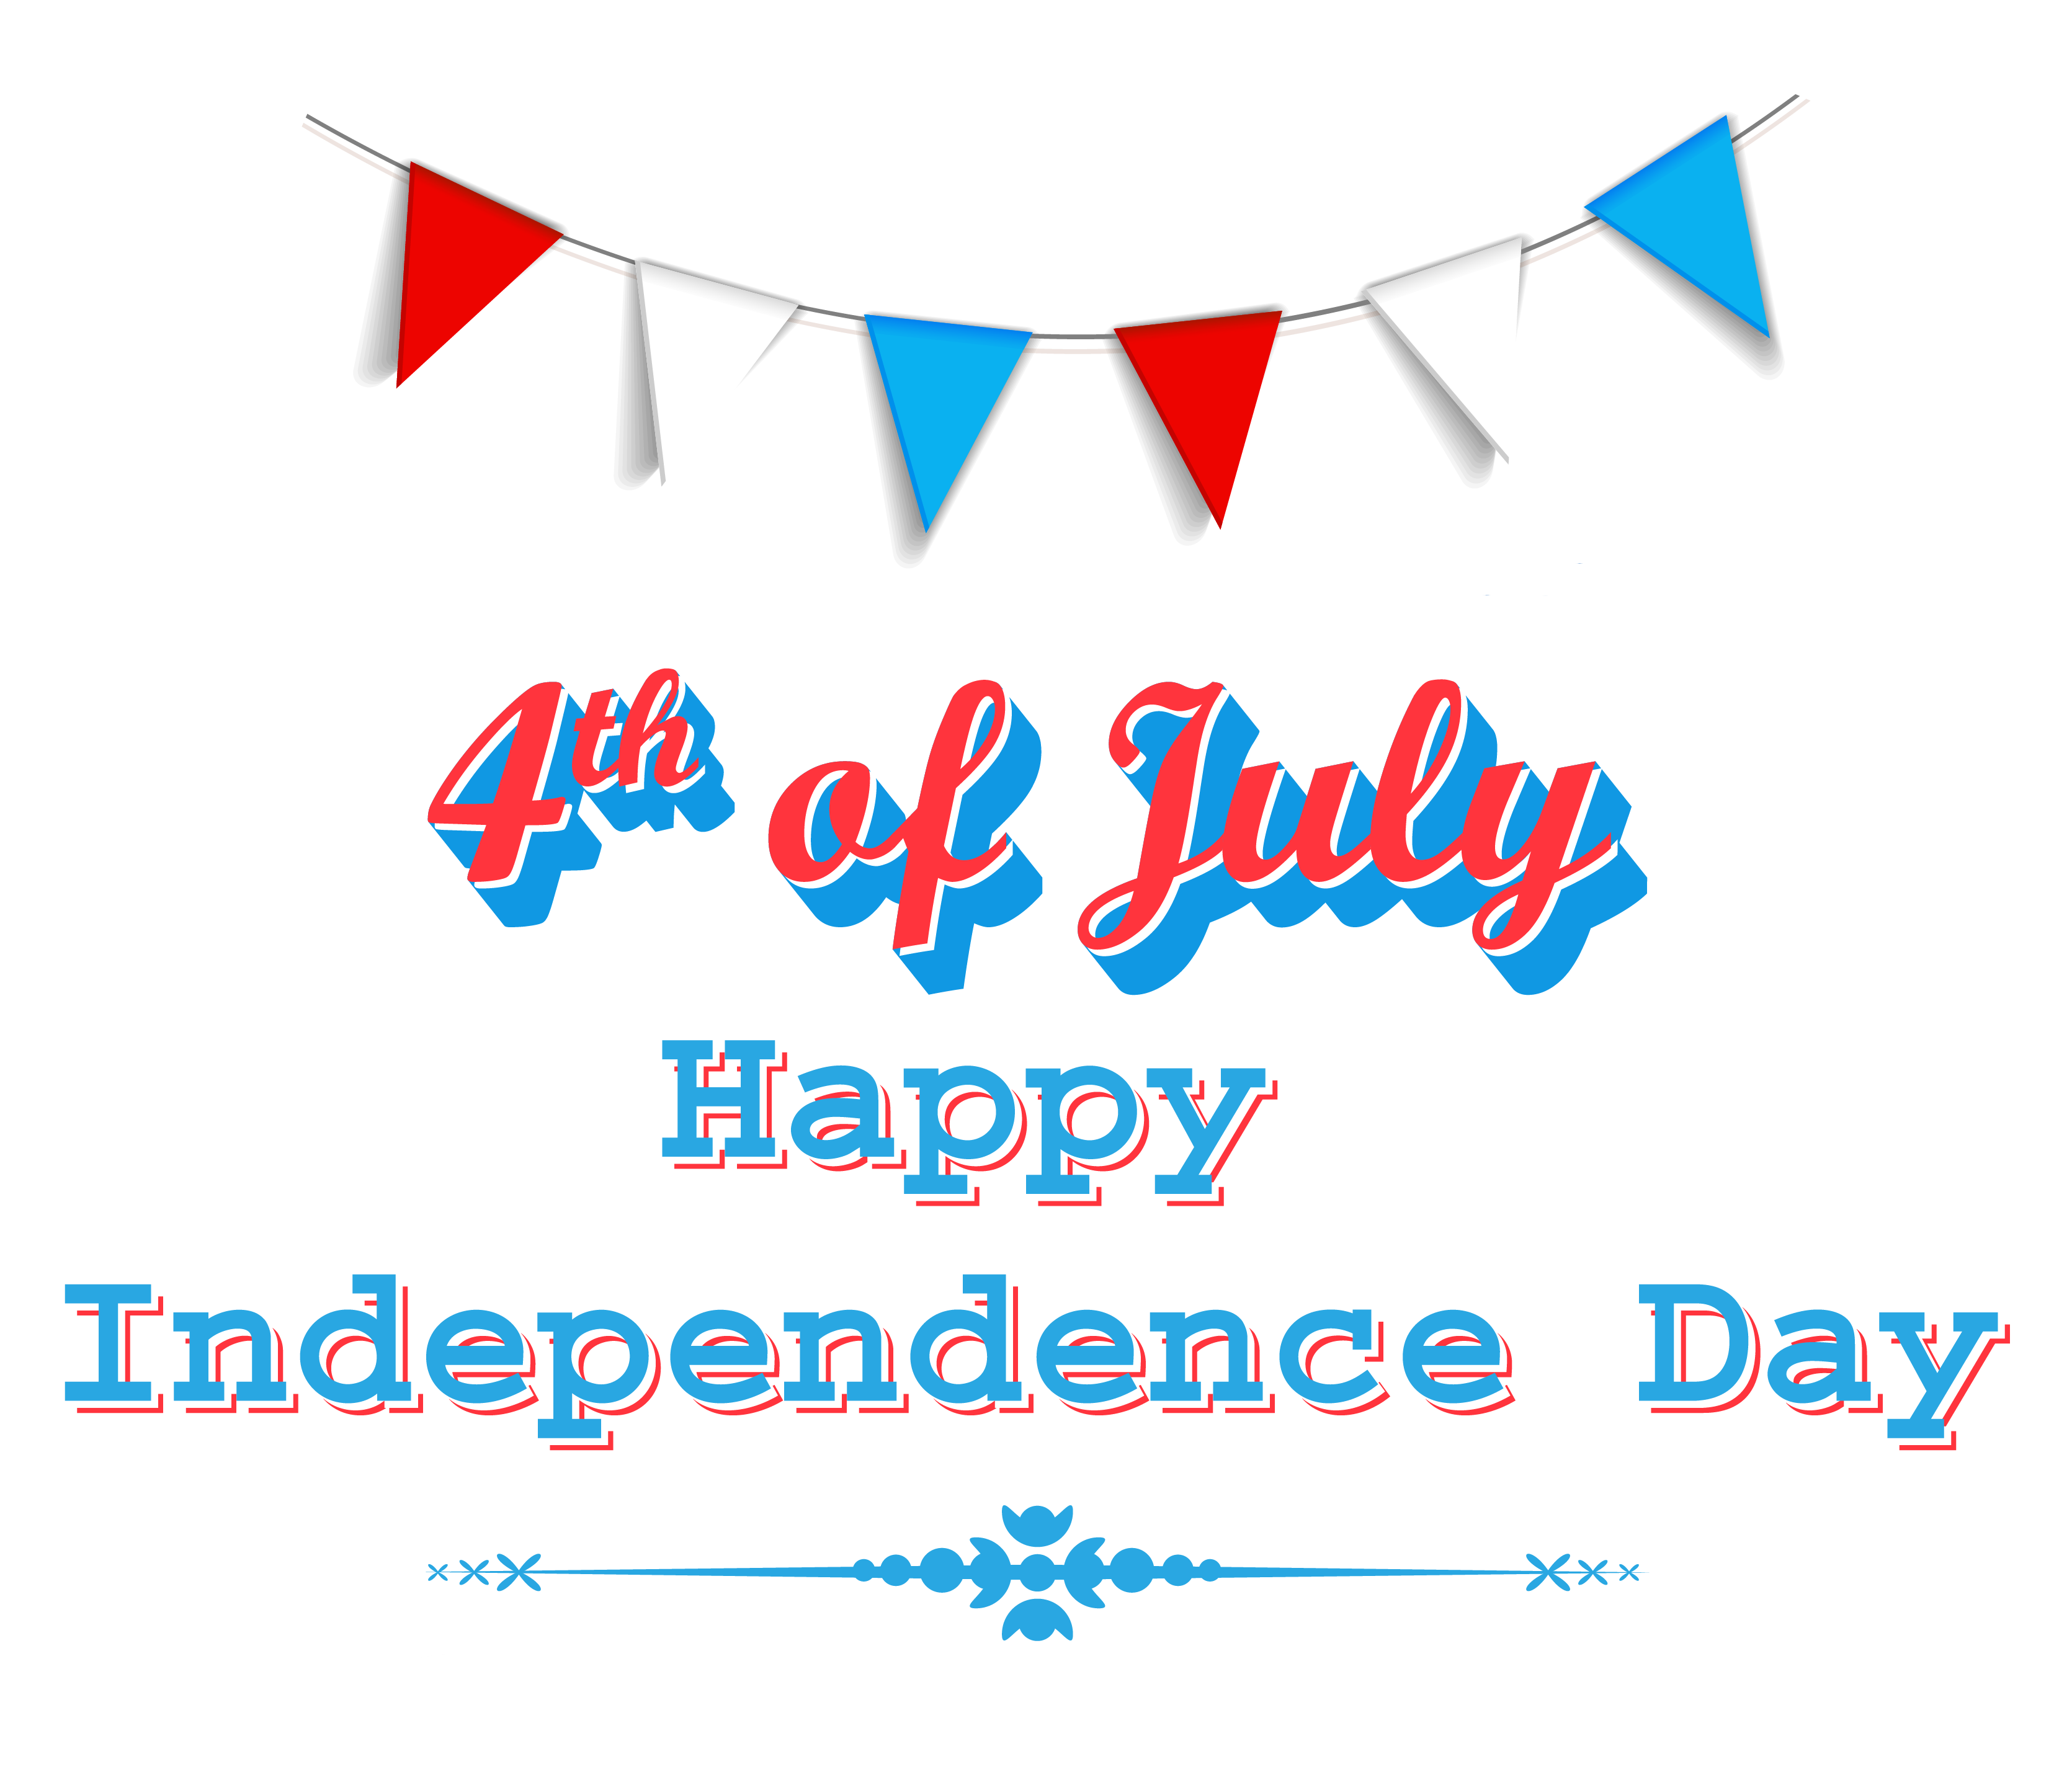 Independence Day Clipart Transparent Background.